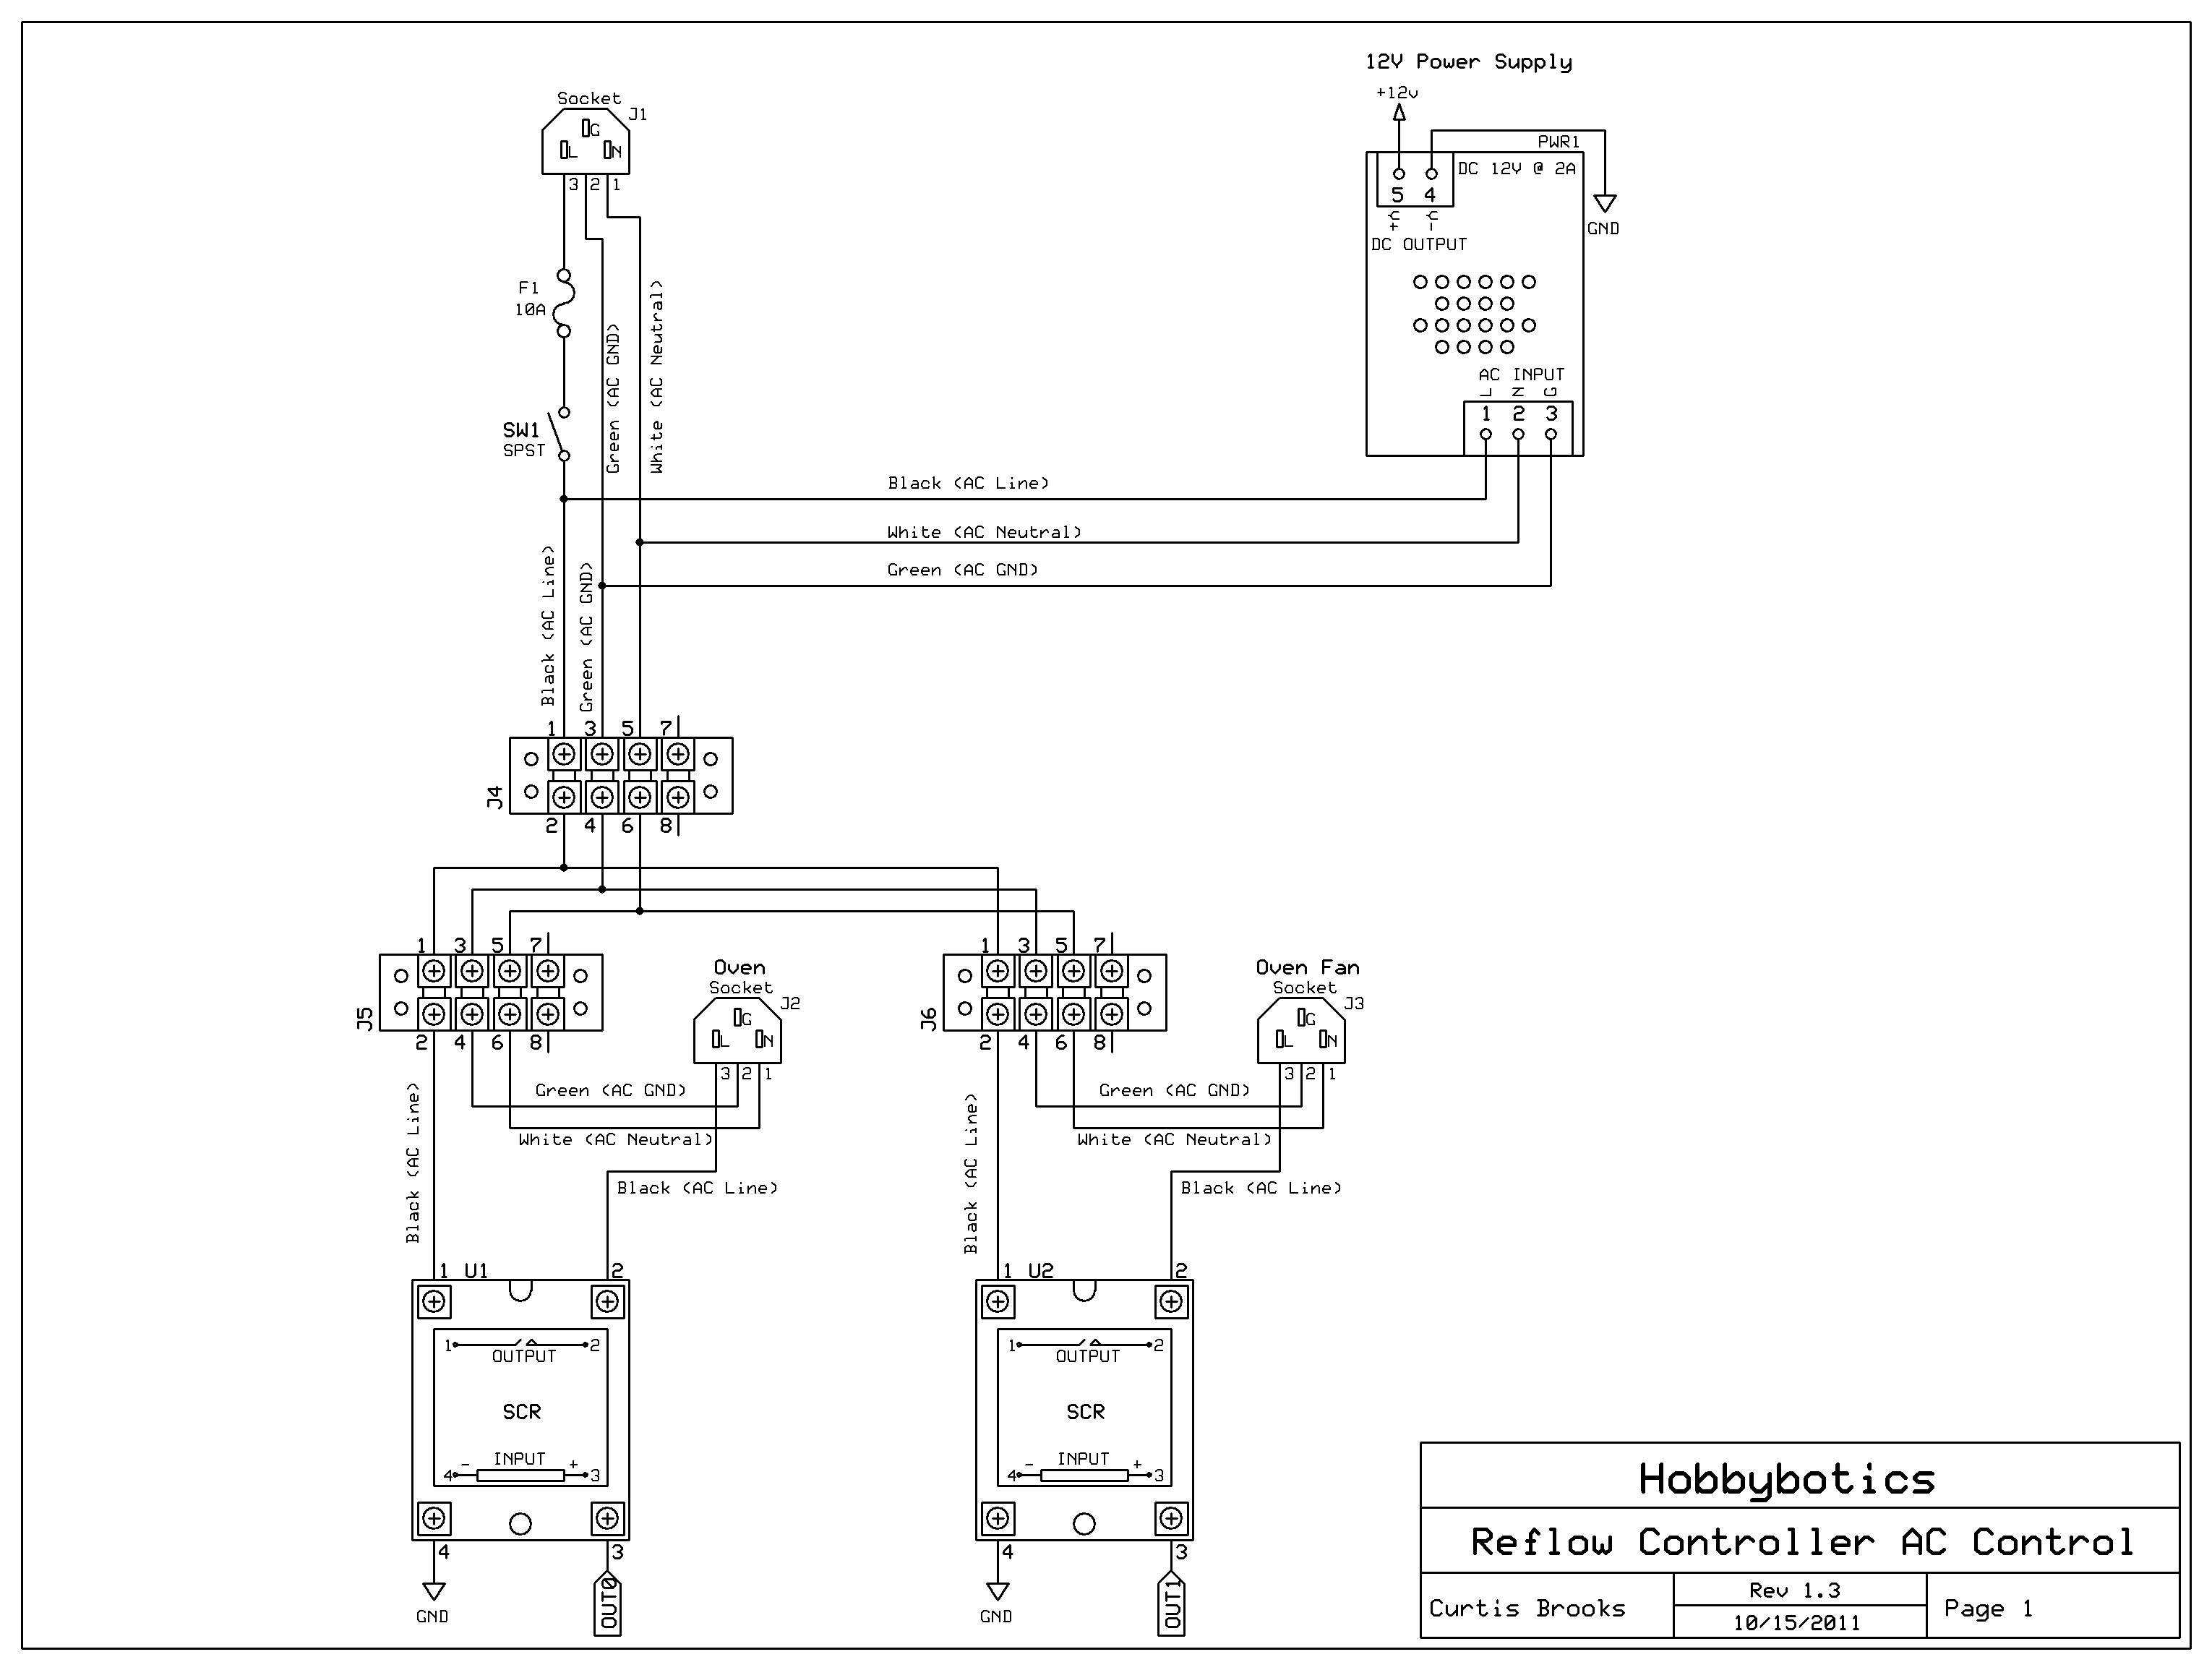 [DIAGRAM] The Derale Fan Controller Can Save Your